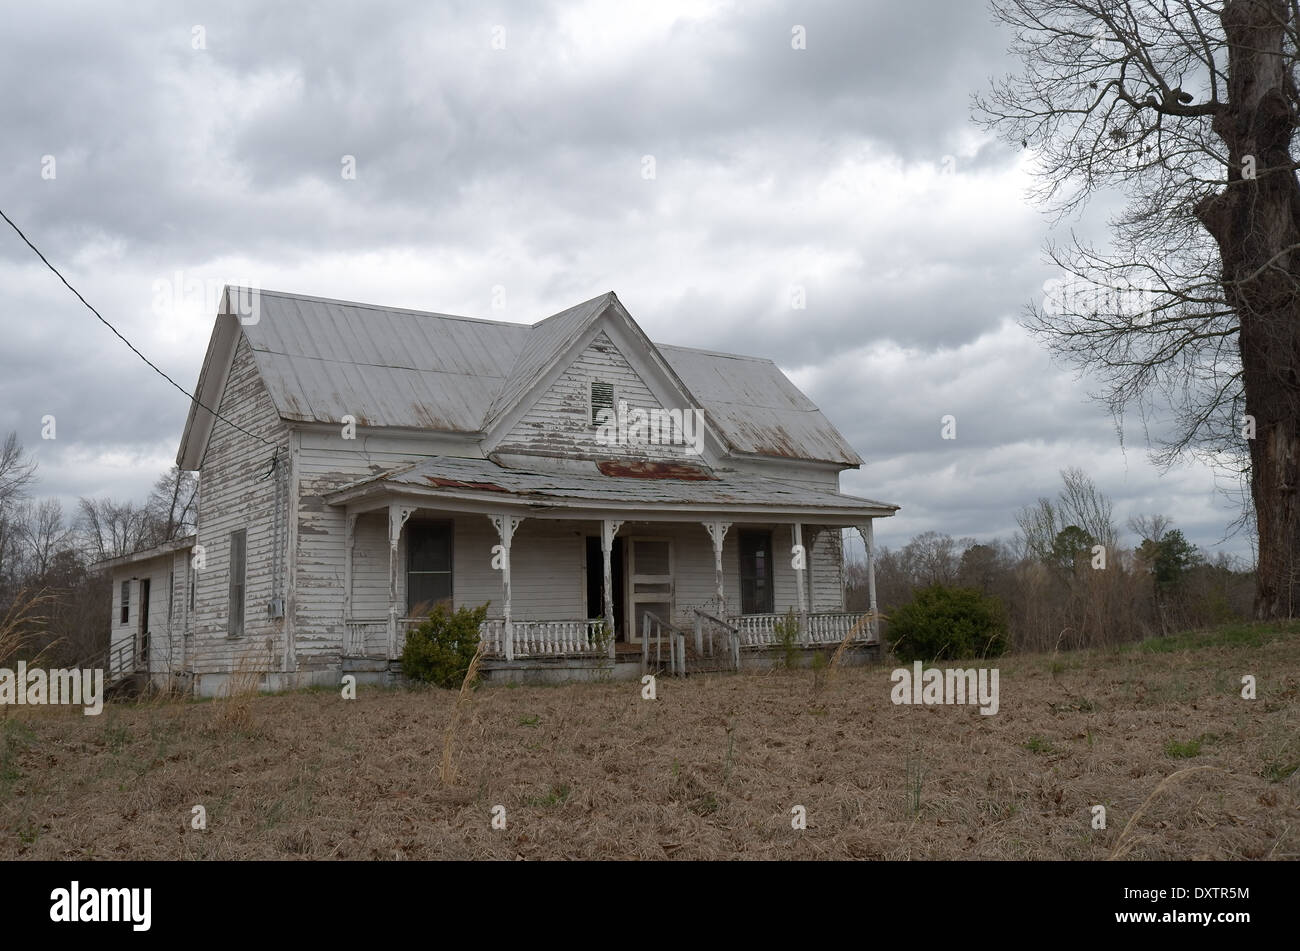 Spooky looking old abandon house - Stock Image